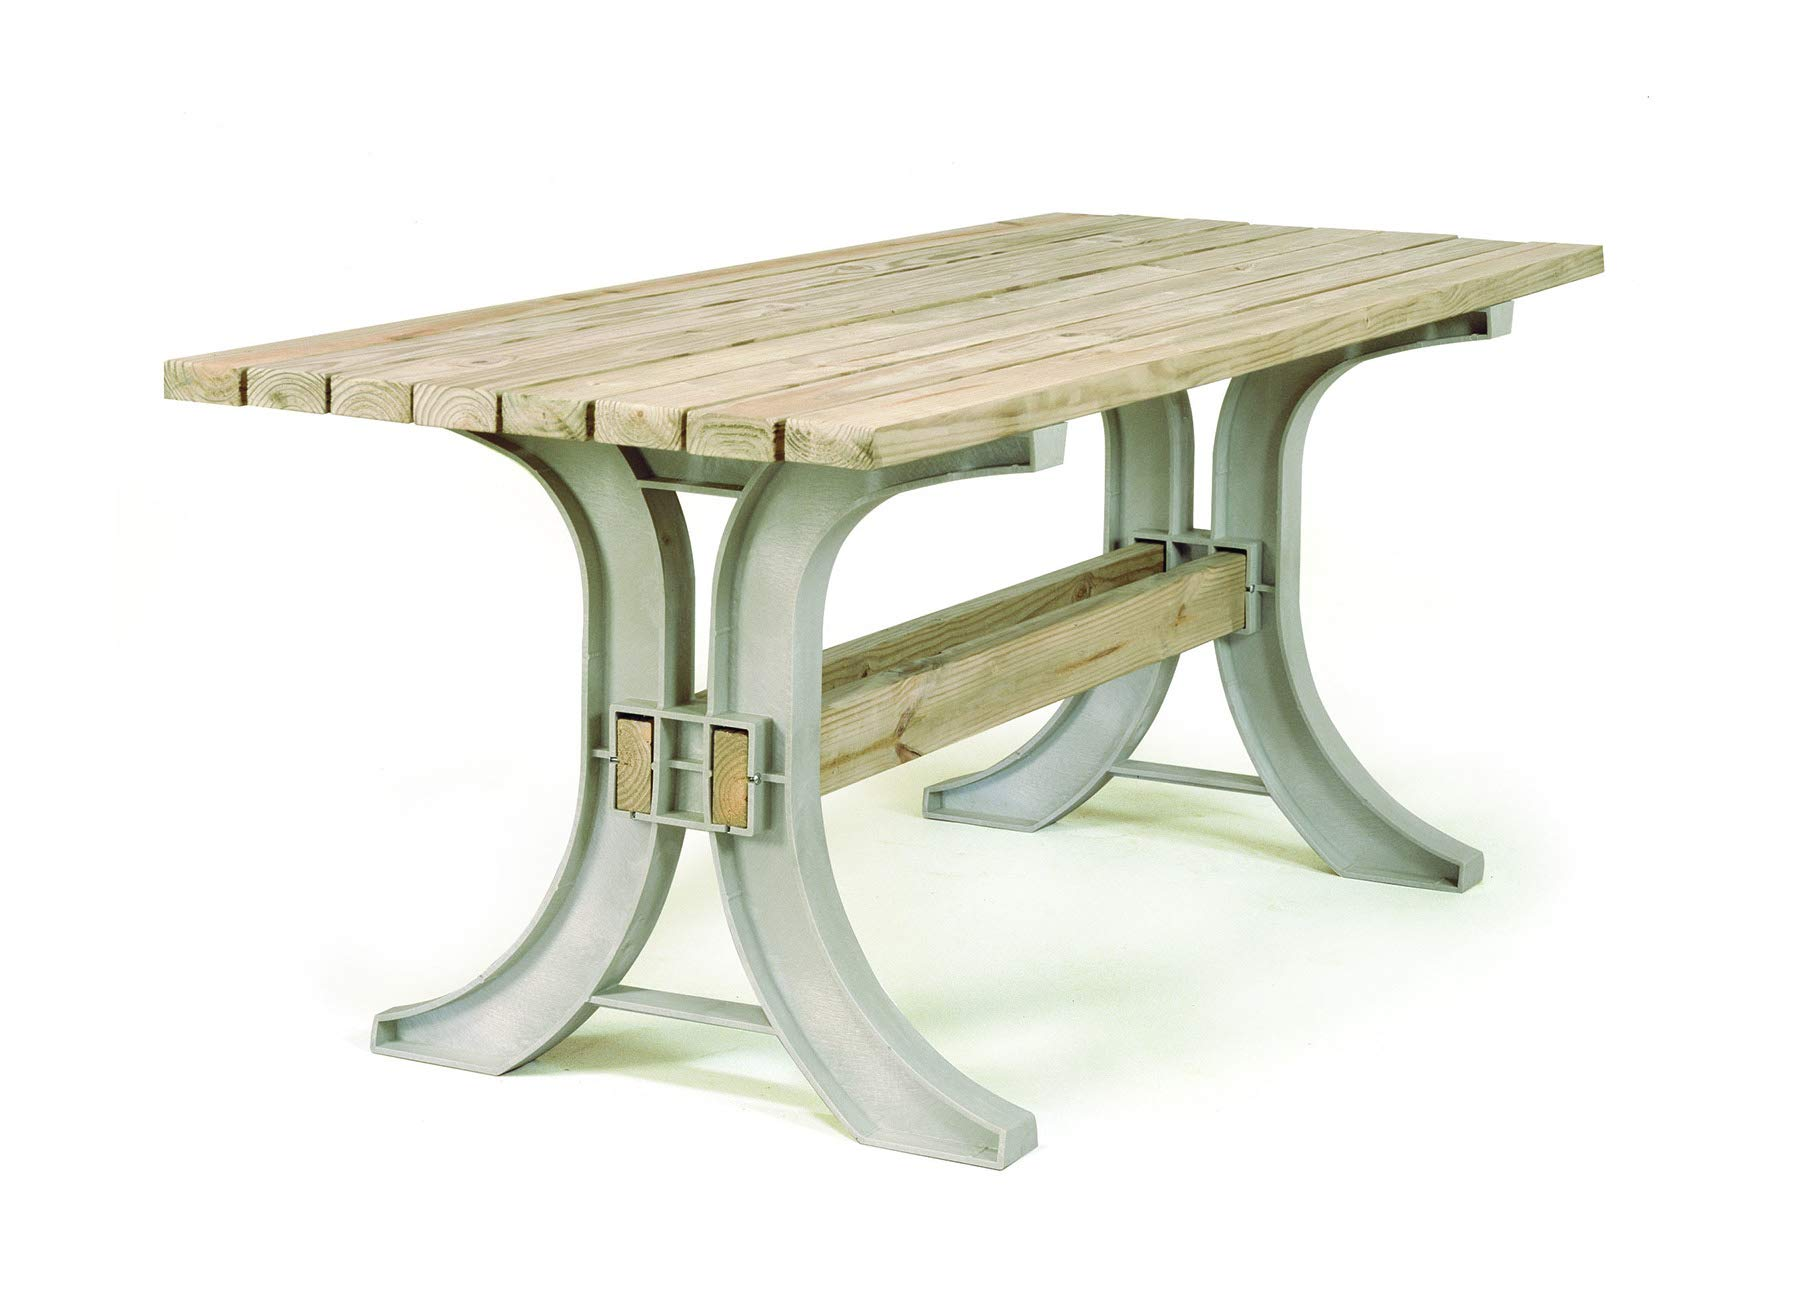 2x4 basics 90152 Patio Table, Flip Top Bench, Sand by 2x4 basics